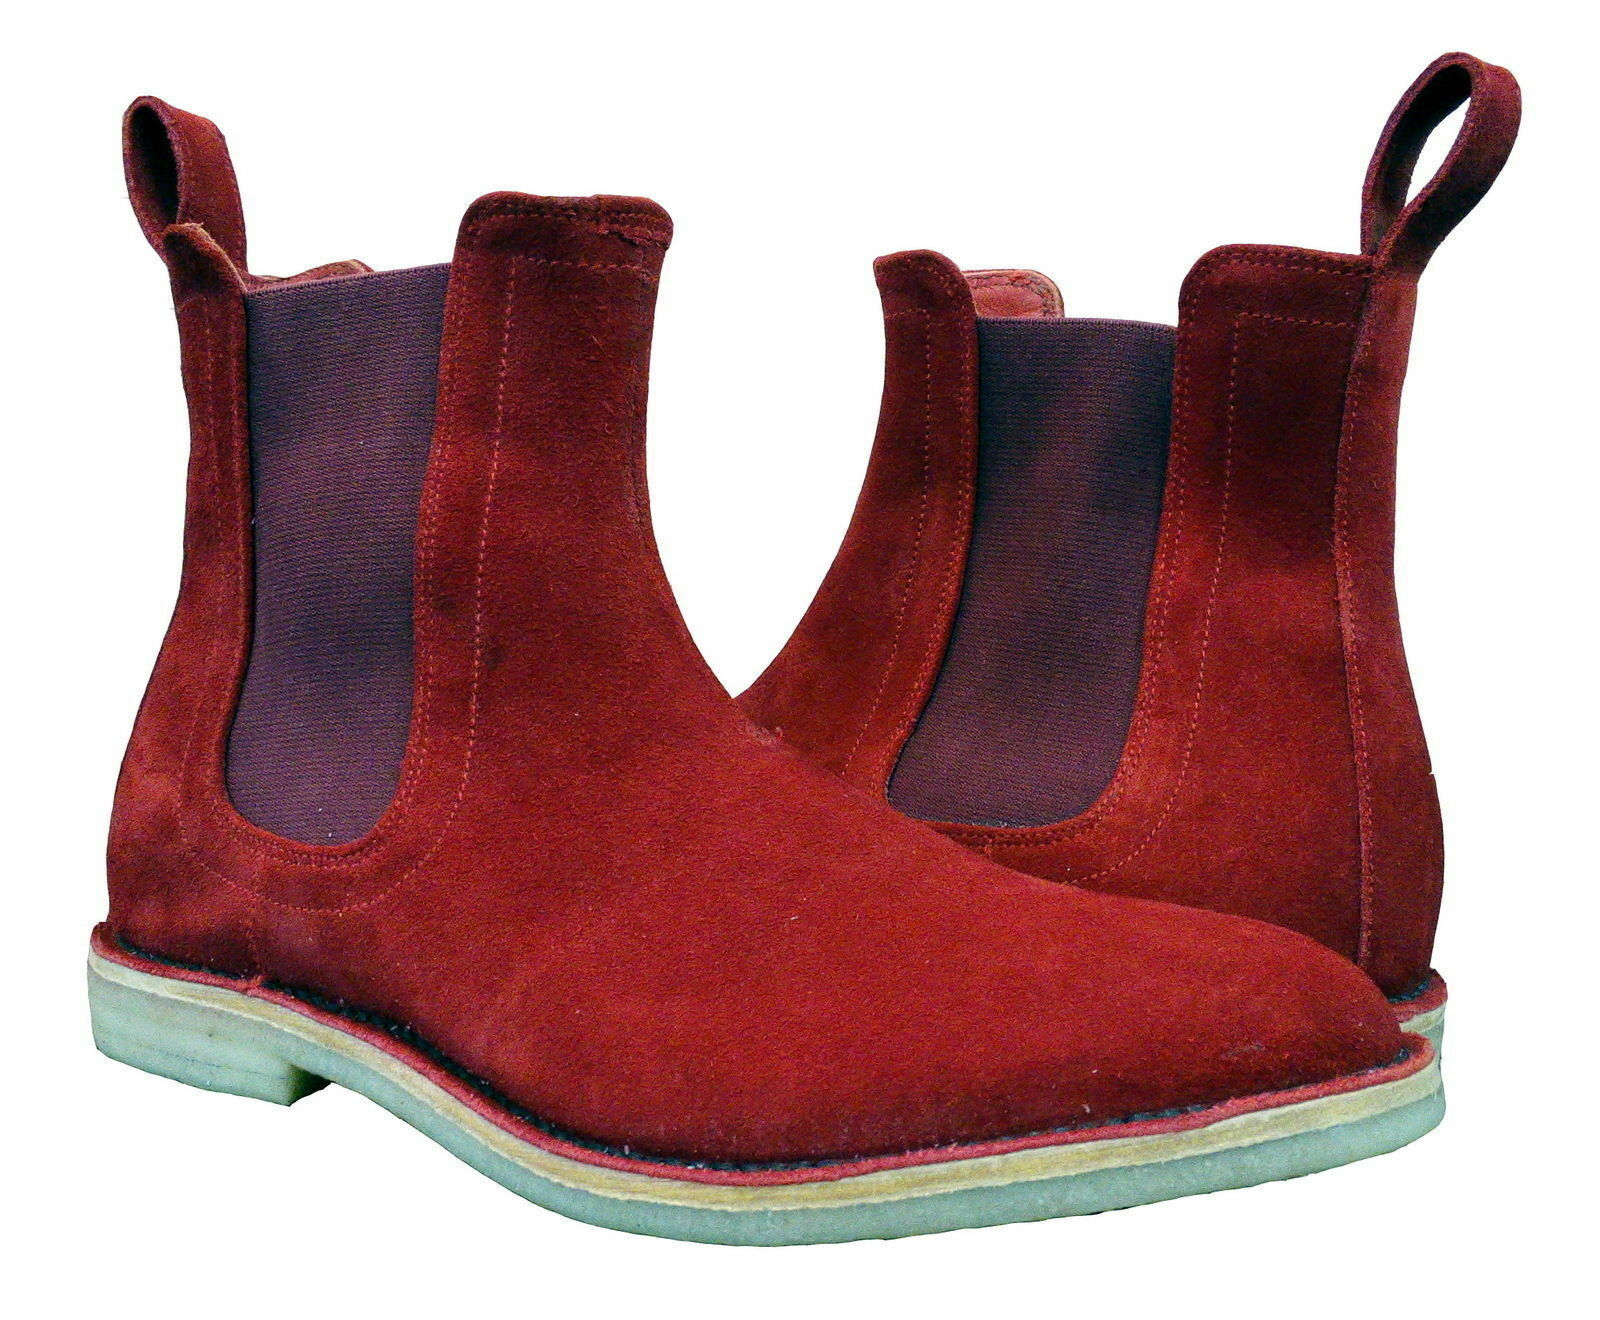 Mens Handmade Boots Chelsea Red color Crepe Sole Suede Leather Formal Wear shoes